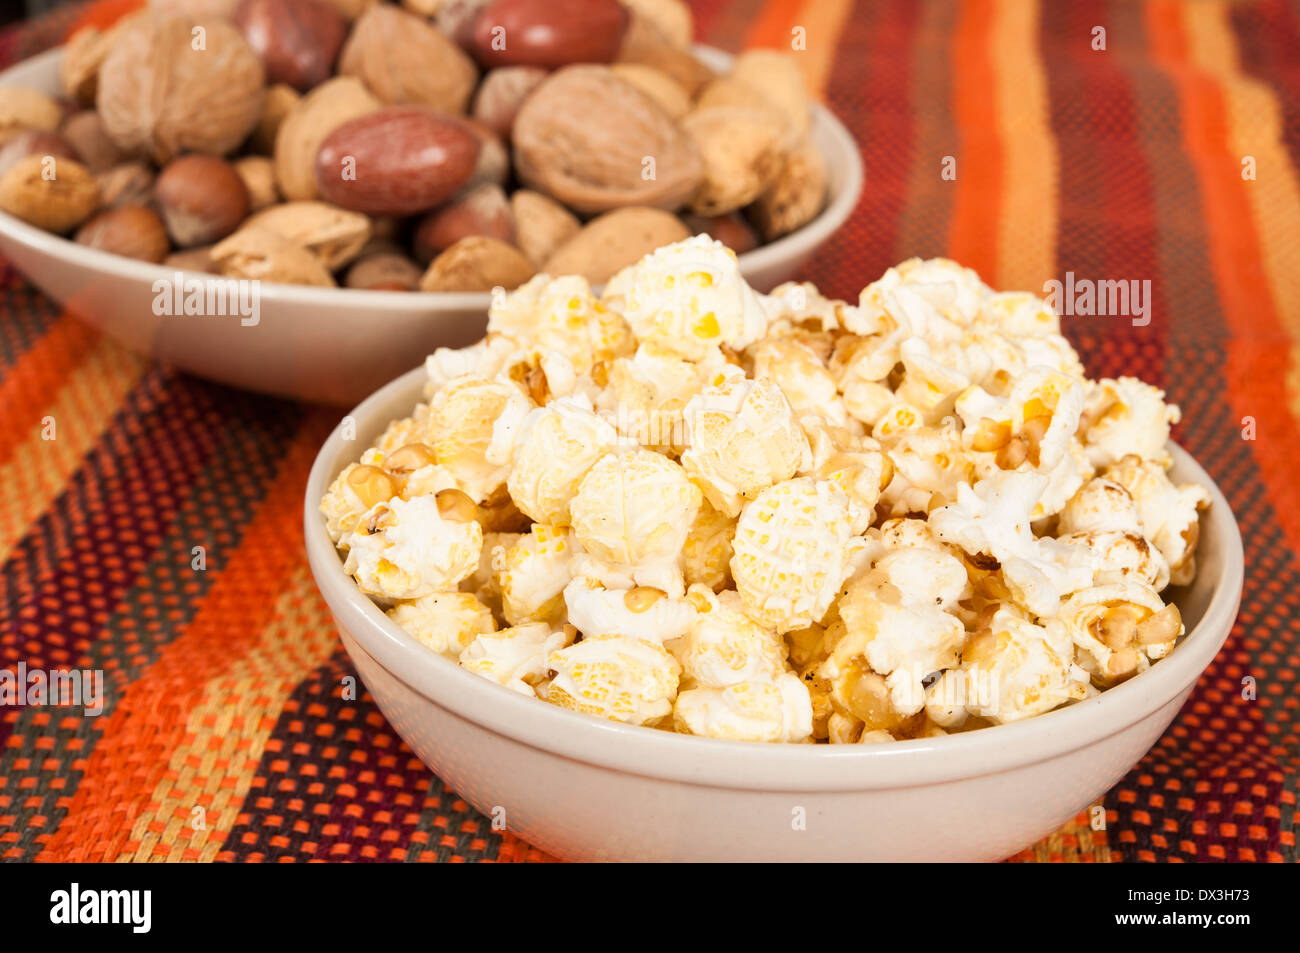 Dishes of mixed nuts and kettle popcorns - Stock Image